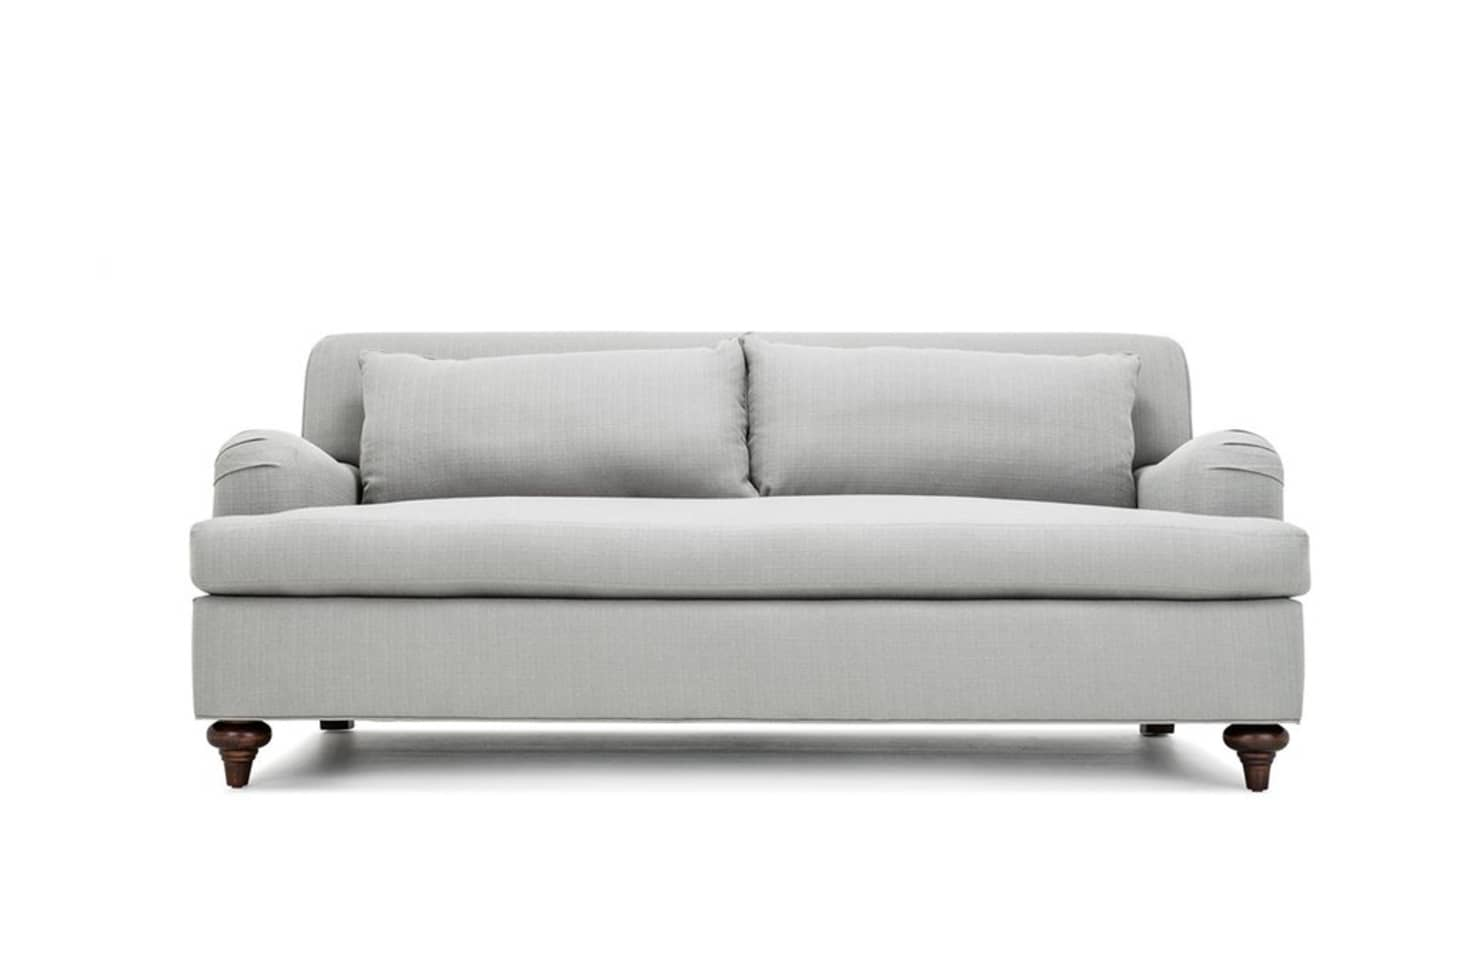 The Best Sleeper Sofas & Sofa Beds   Apartment Therapy